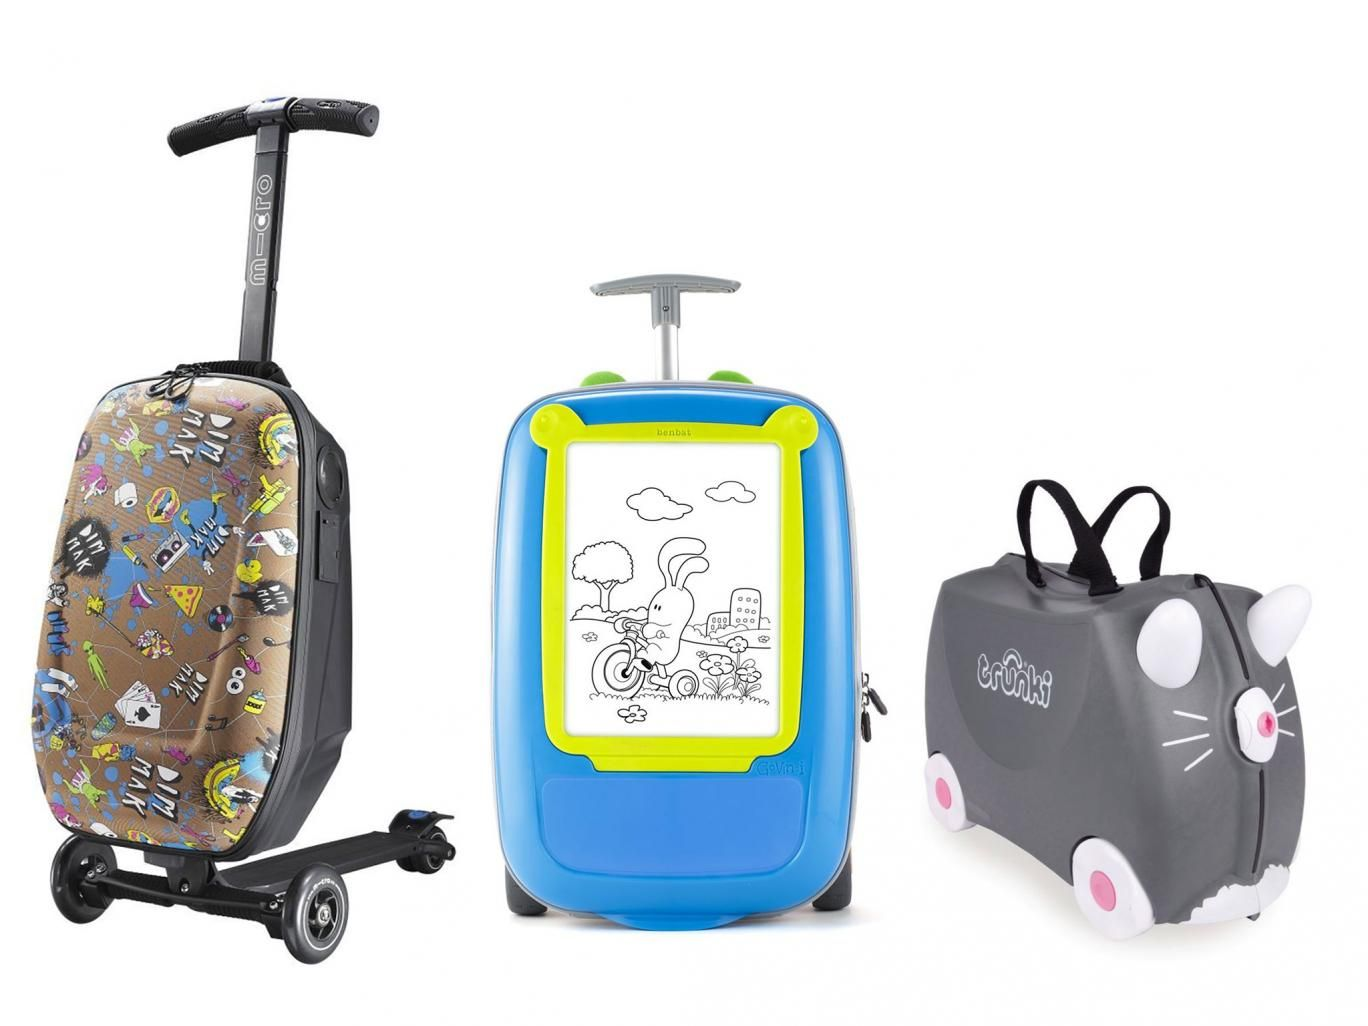 cdd77a52df36 13 best children's luggage products to make travelling more fun ...